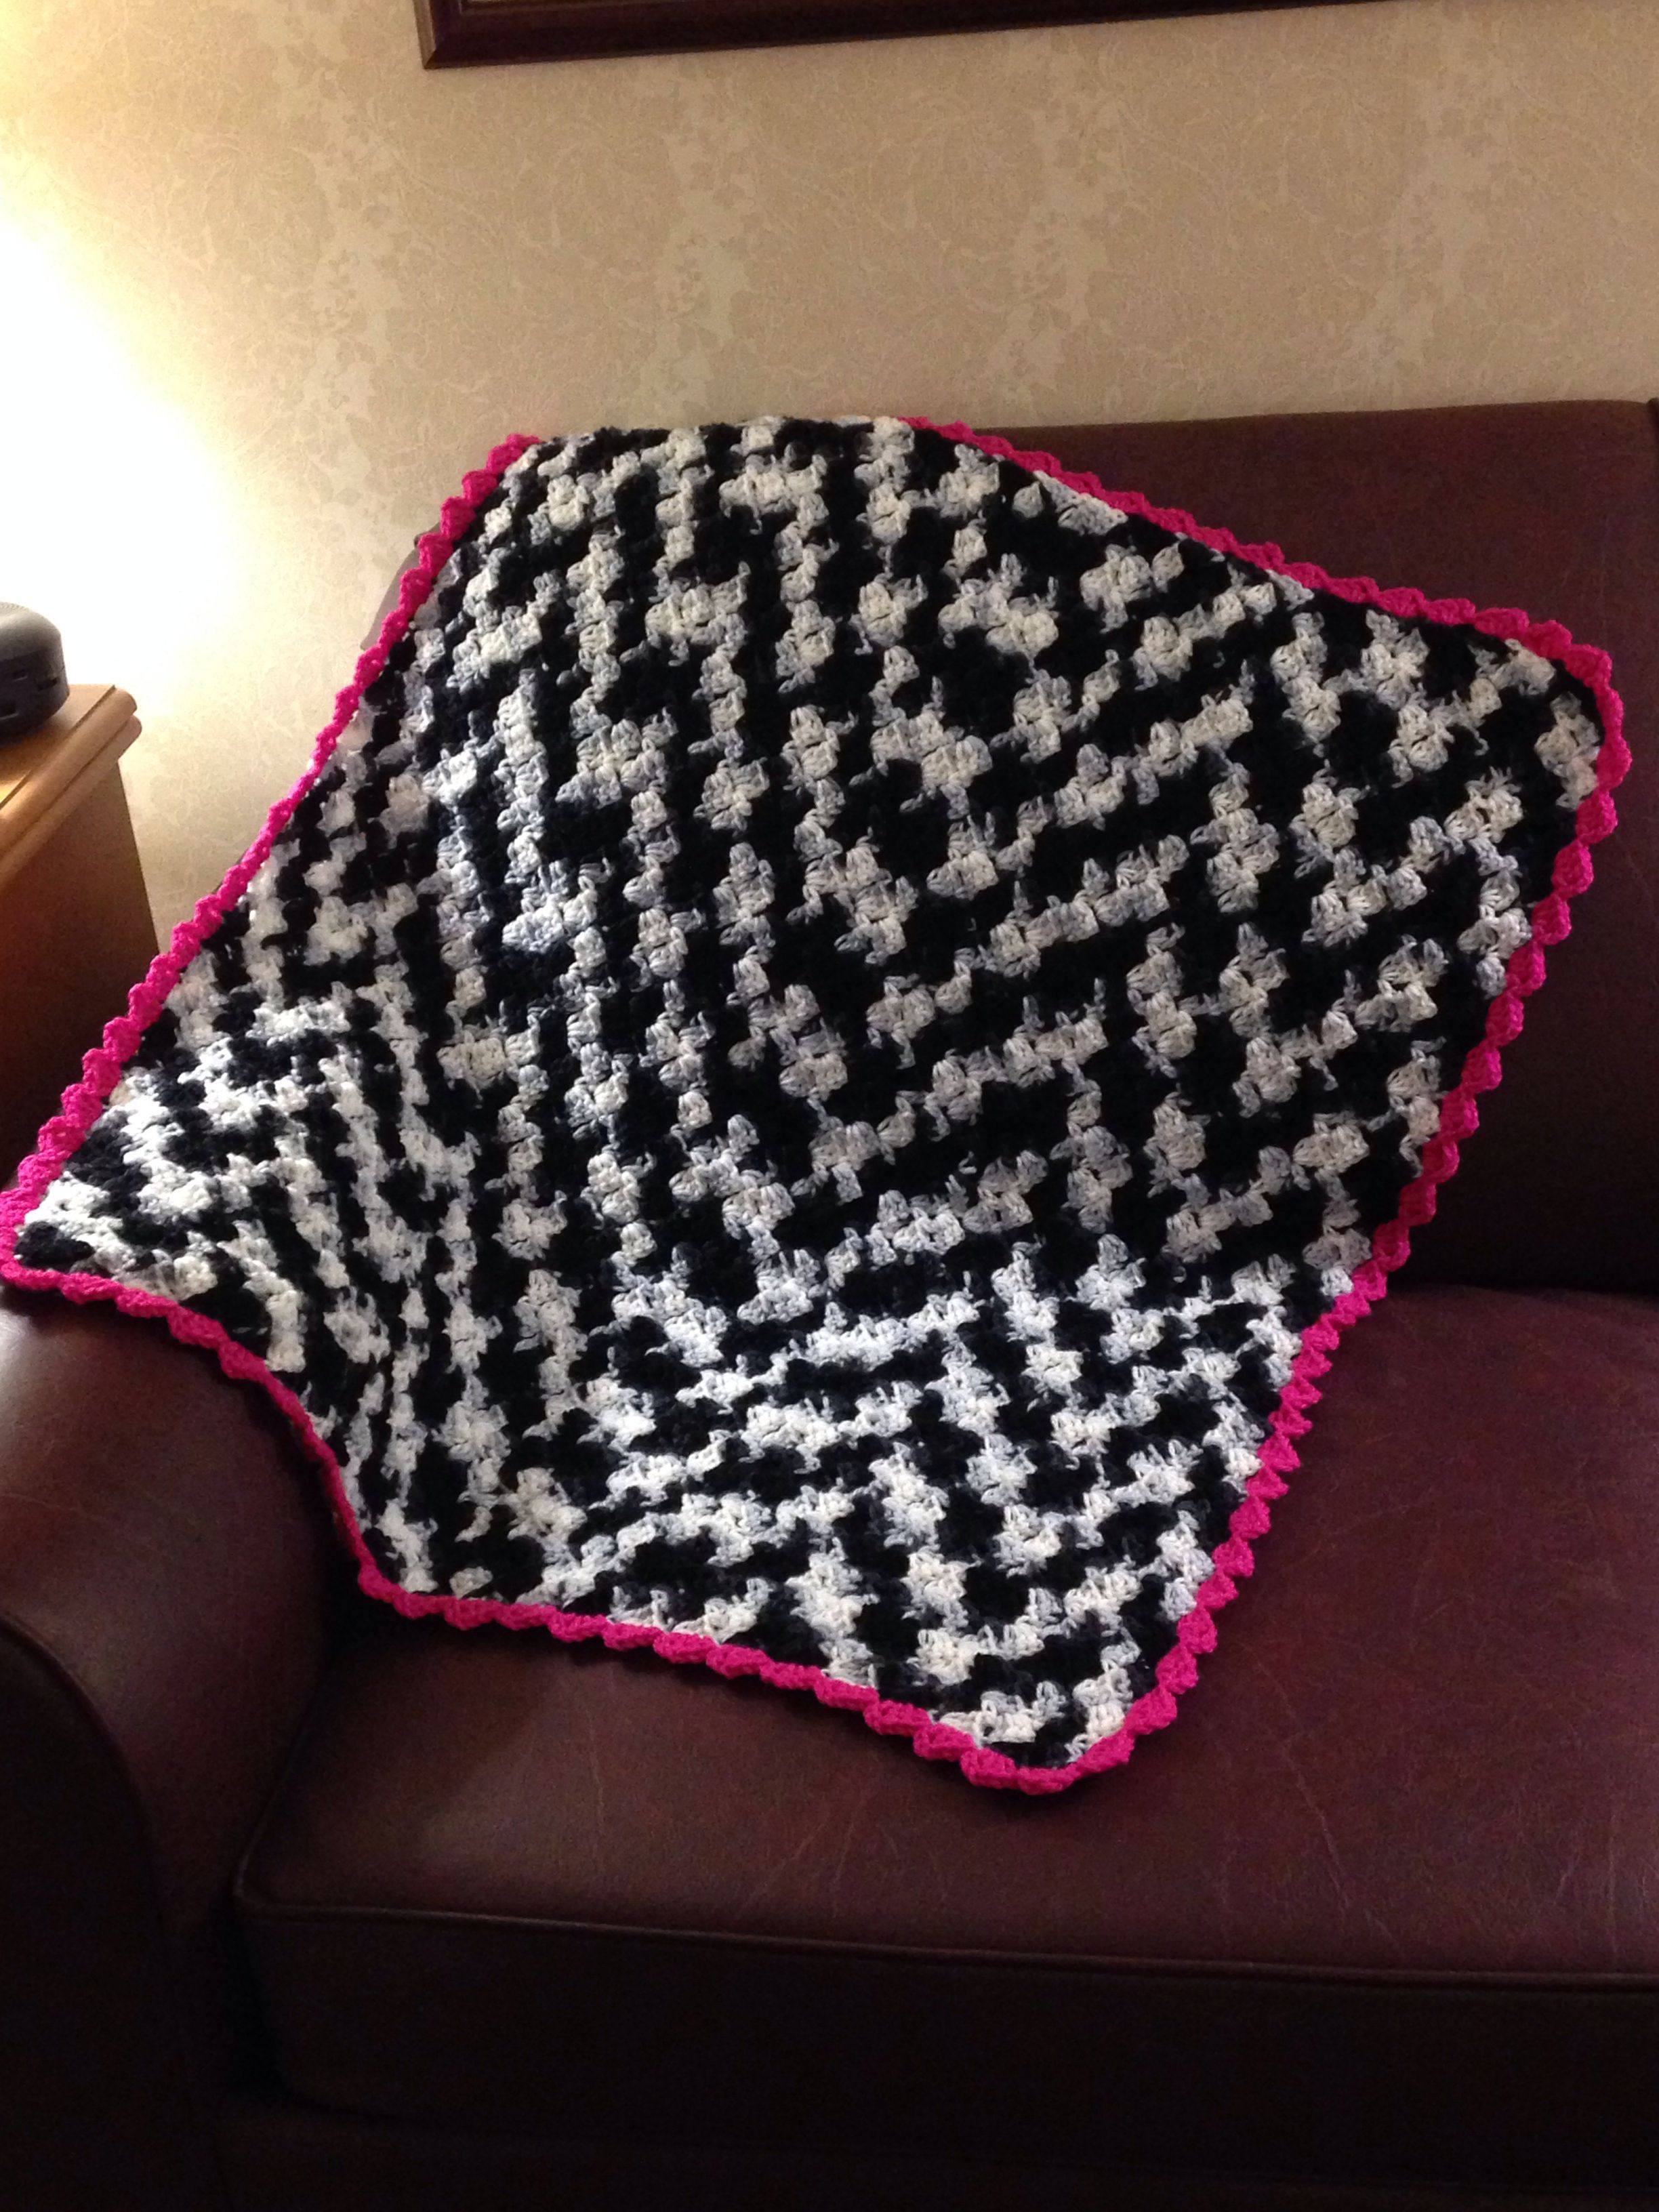 Crochet Zebra Blanket : Zebra crocheted baby blanket with pink trim CROCHET Pinterest